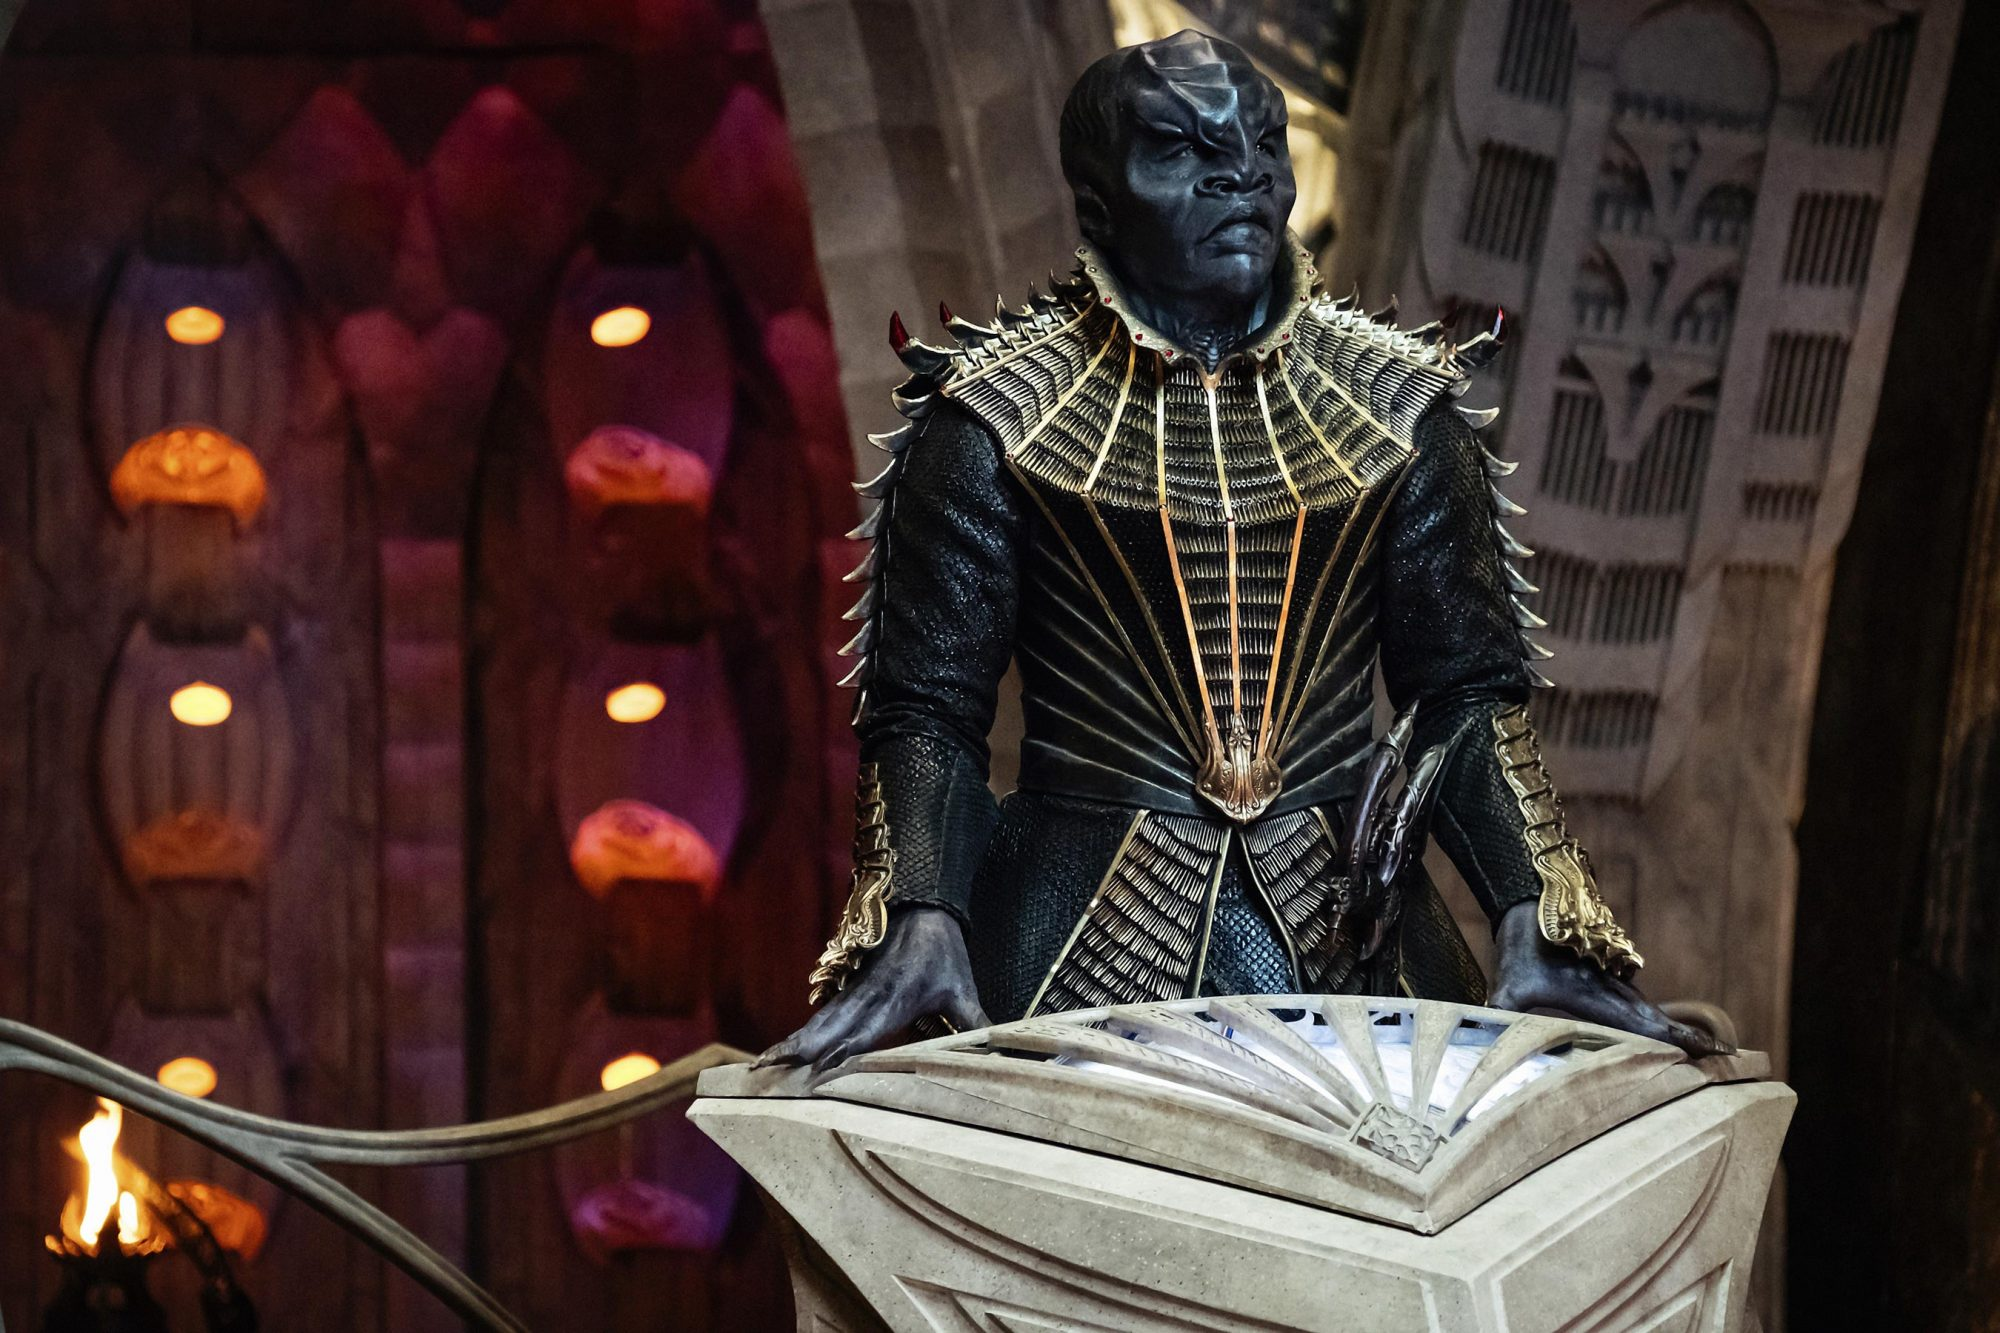 A closer look at Obi as T'Kuvma on the bridge of his ship